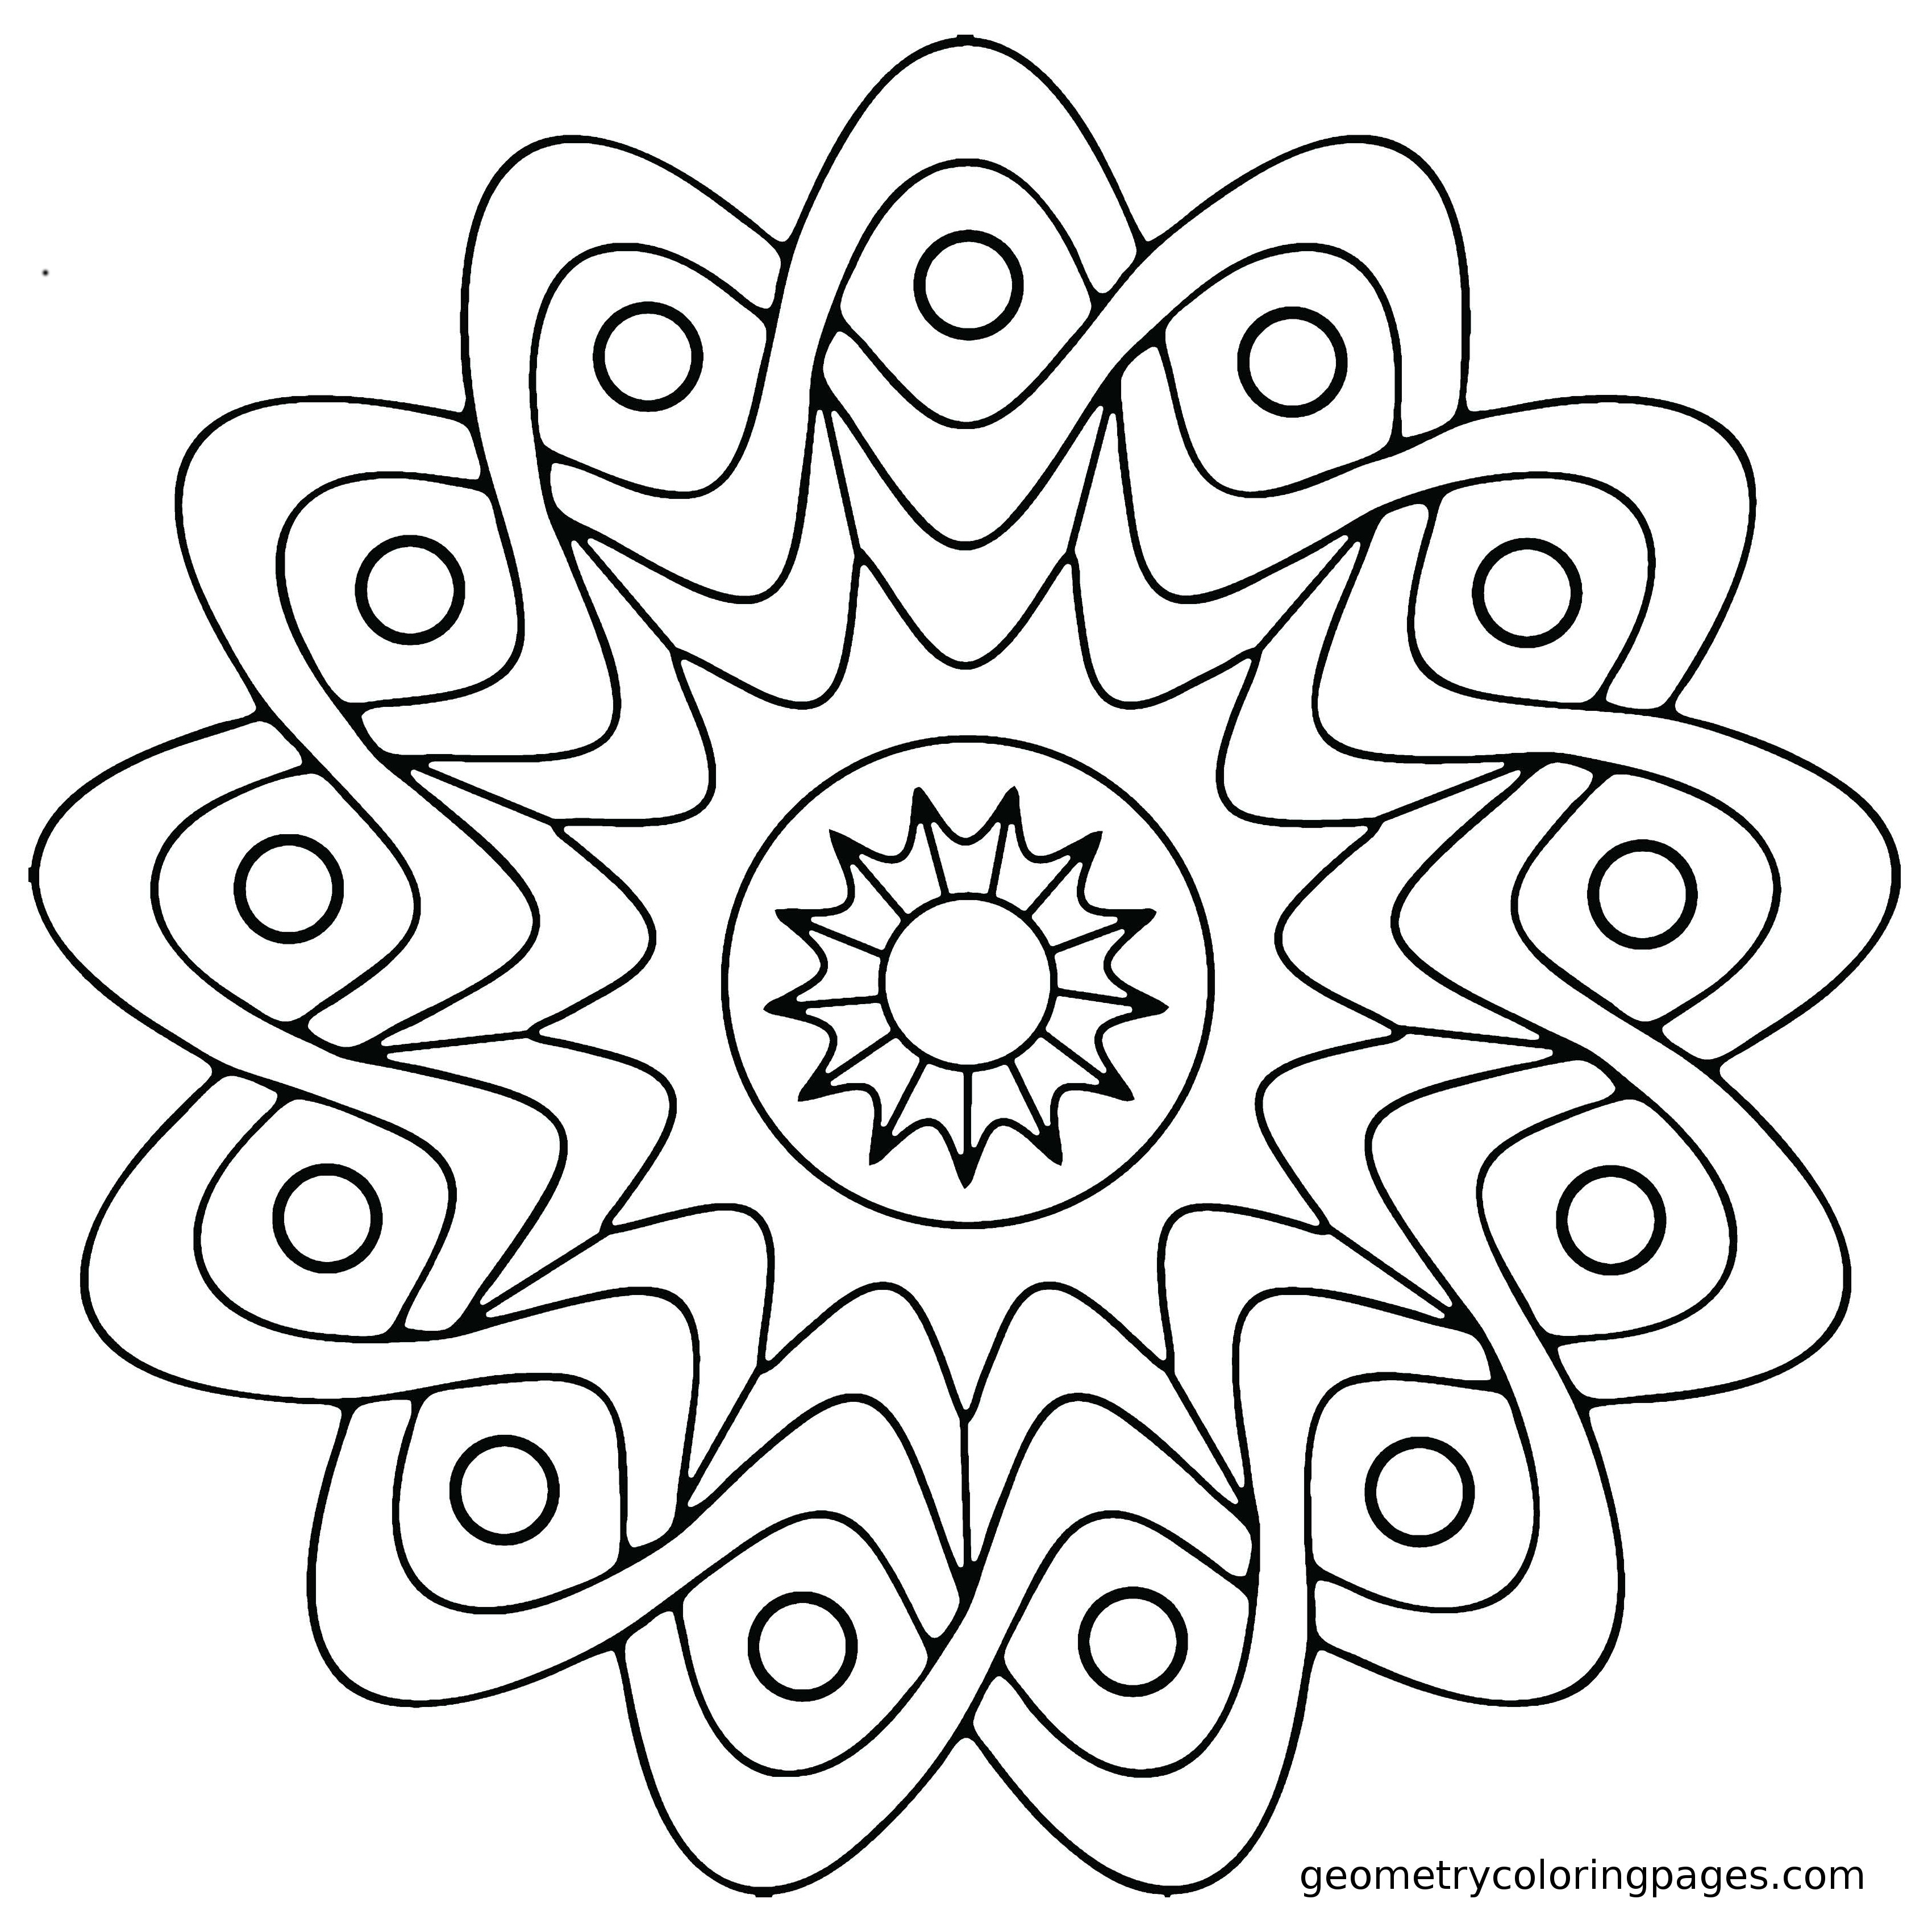 Easy Coloring Pages For Kids at GetDrawings.com | Free for ...